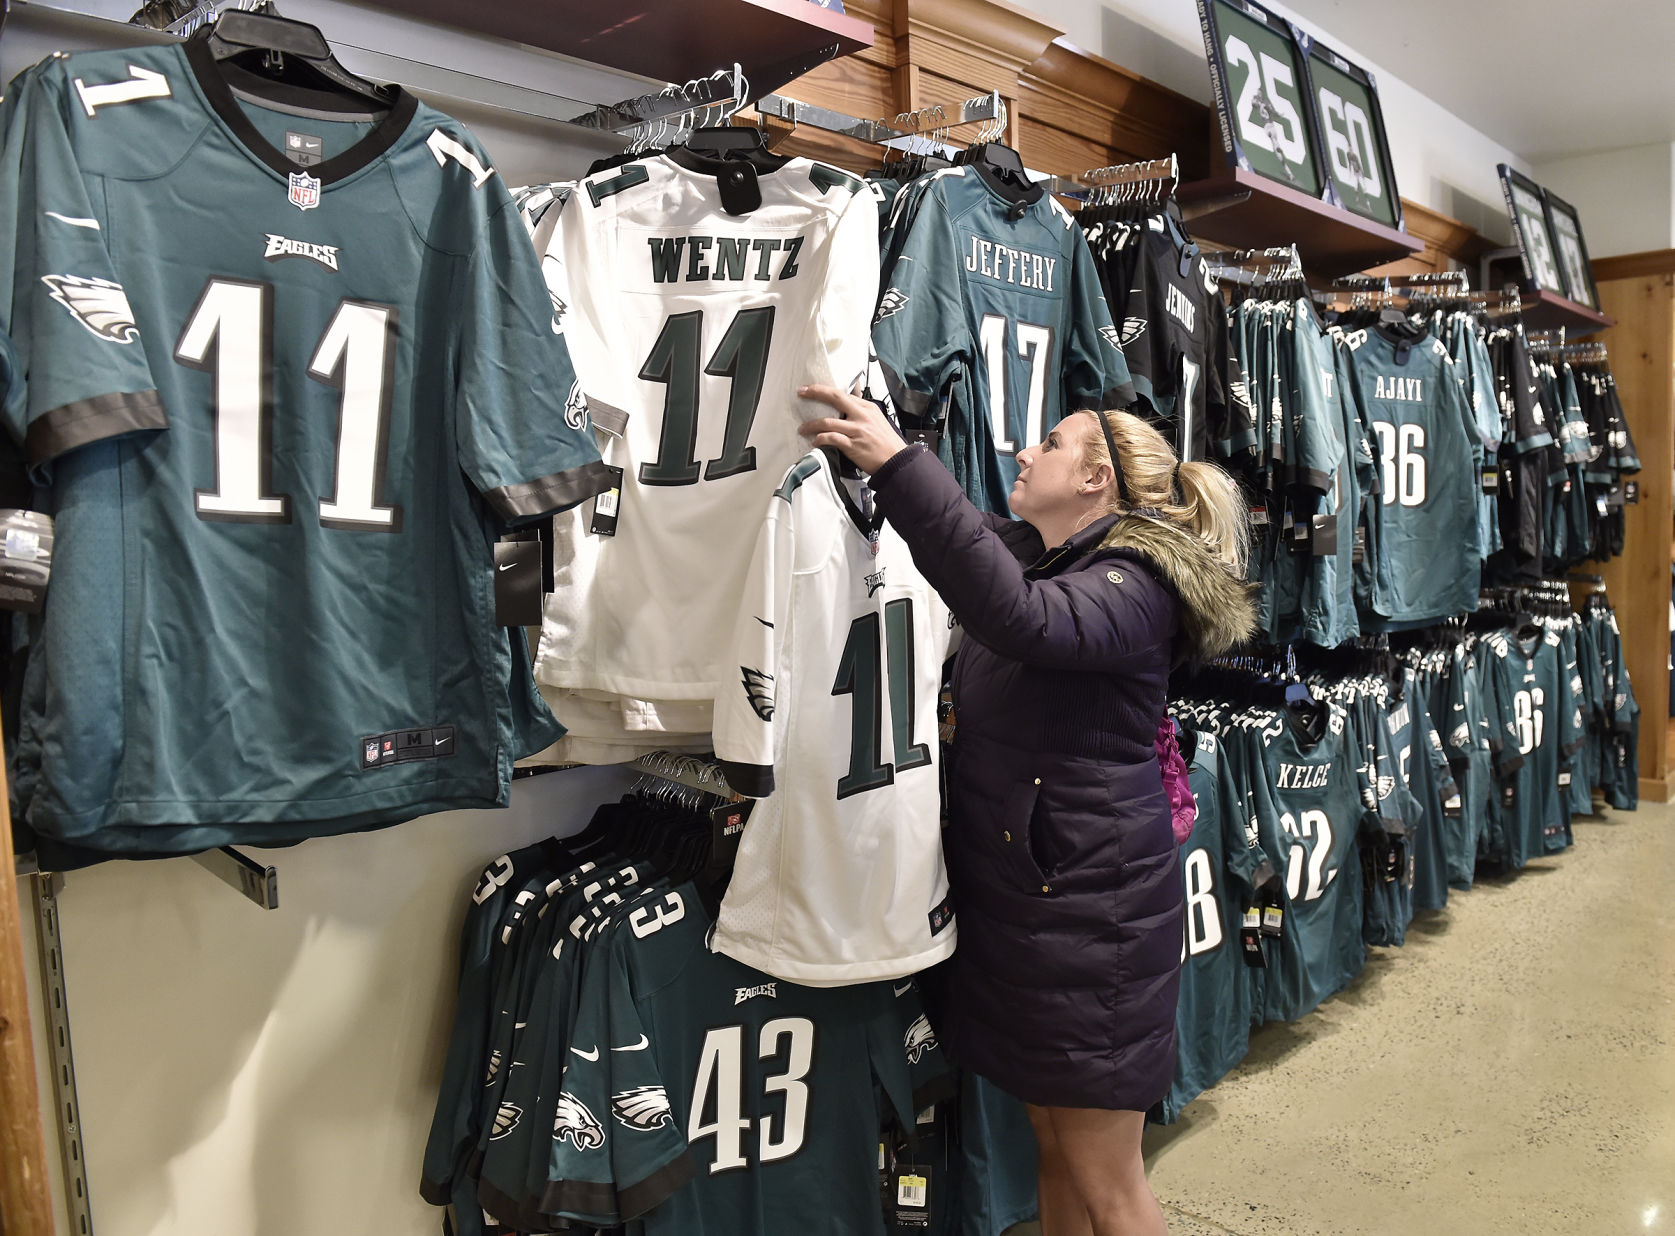 Wholesale Fans stock up on Eagles gear in Lancaster County to celebrate  for cheap